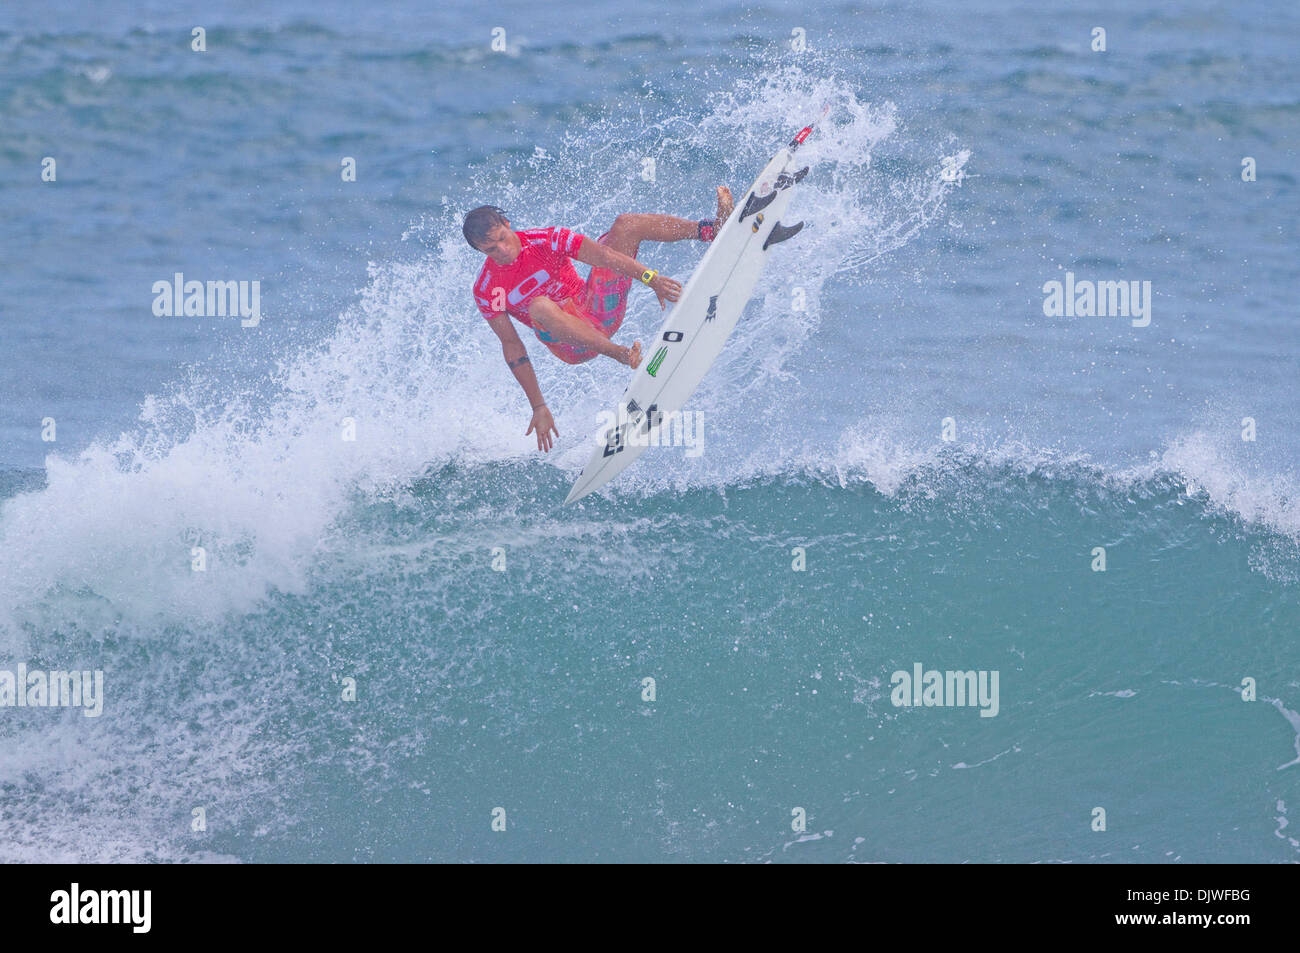 7ffbb69b90 Zsurfing Stock Photos   Zsurfing Stock Images - Alamy